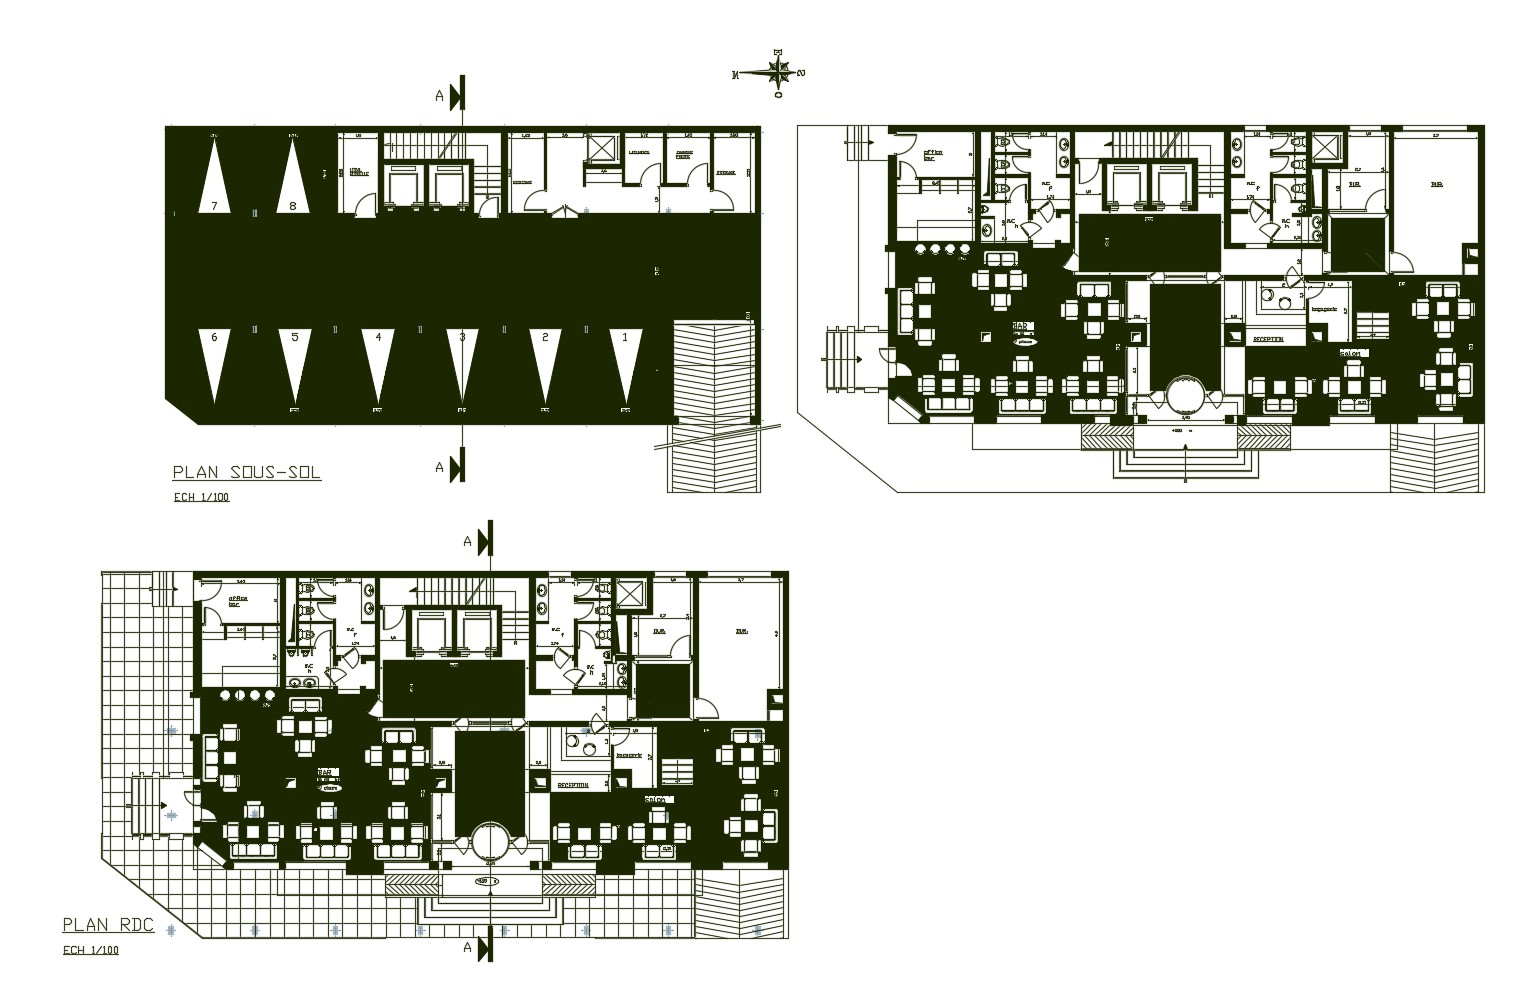 Architectural plan of the hotel building with detail dimension in AutoCAD